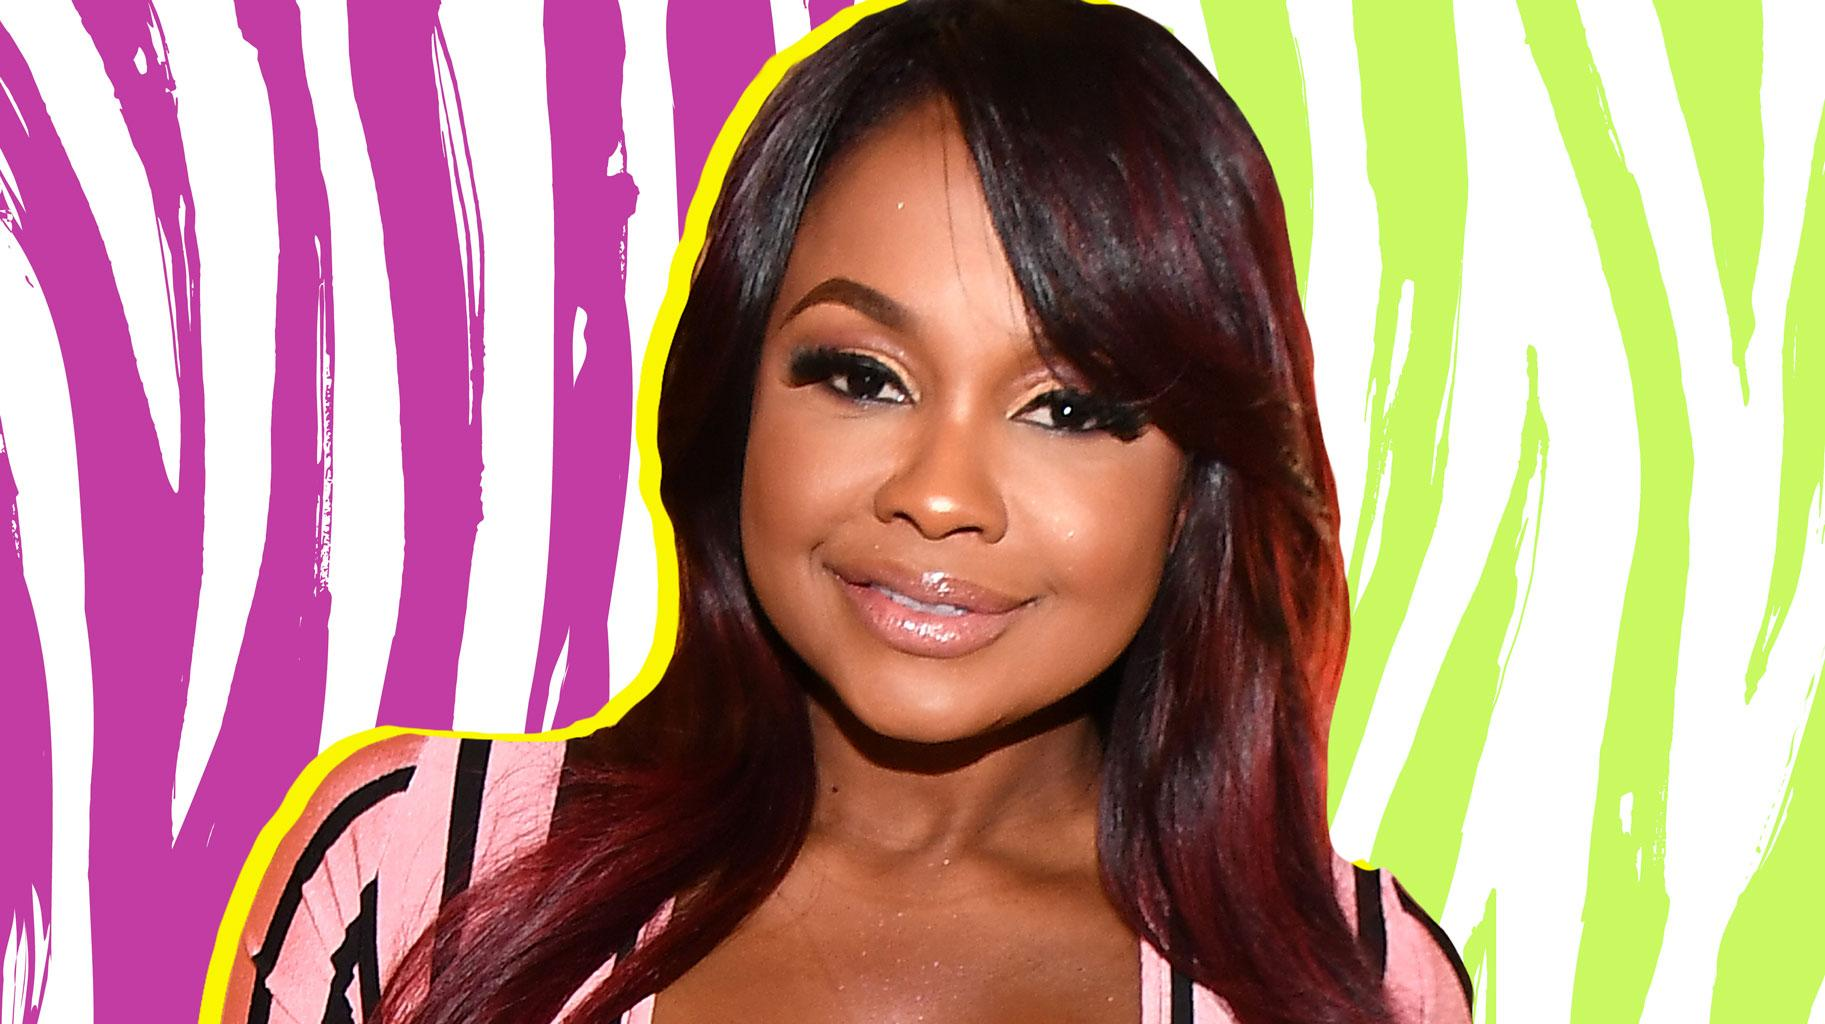 Phaedra Parks' Fans Can Join Her For Coffee This Morning On IG Live